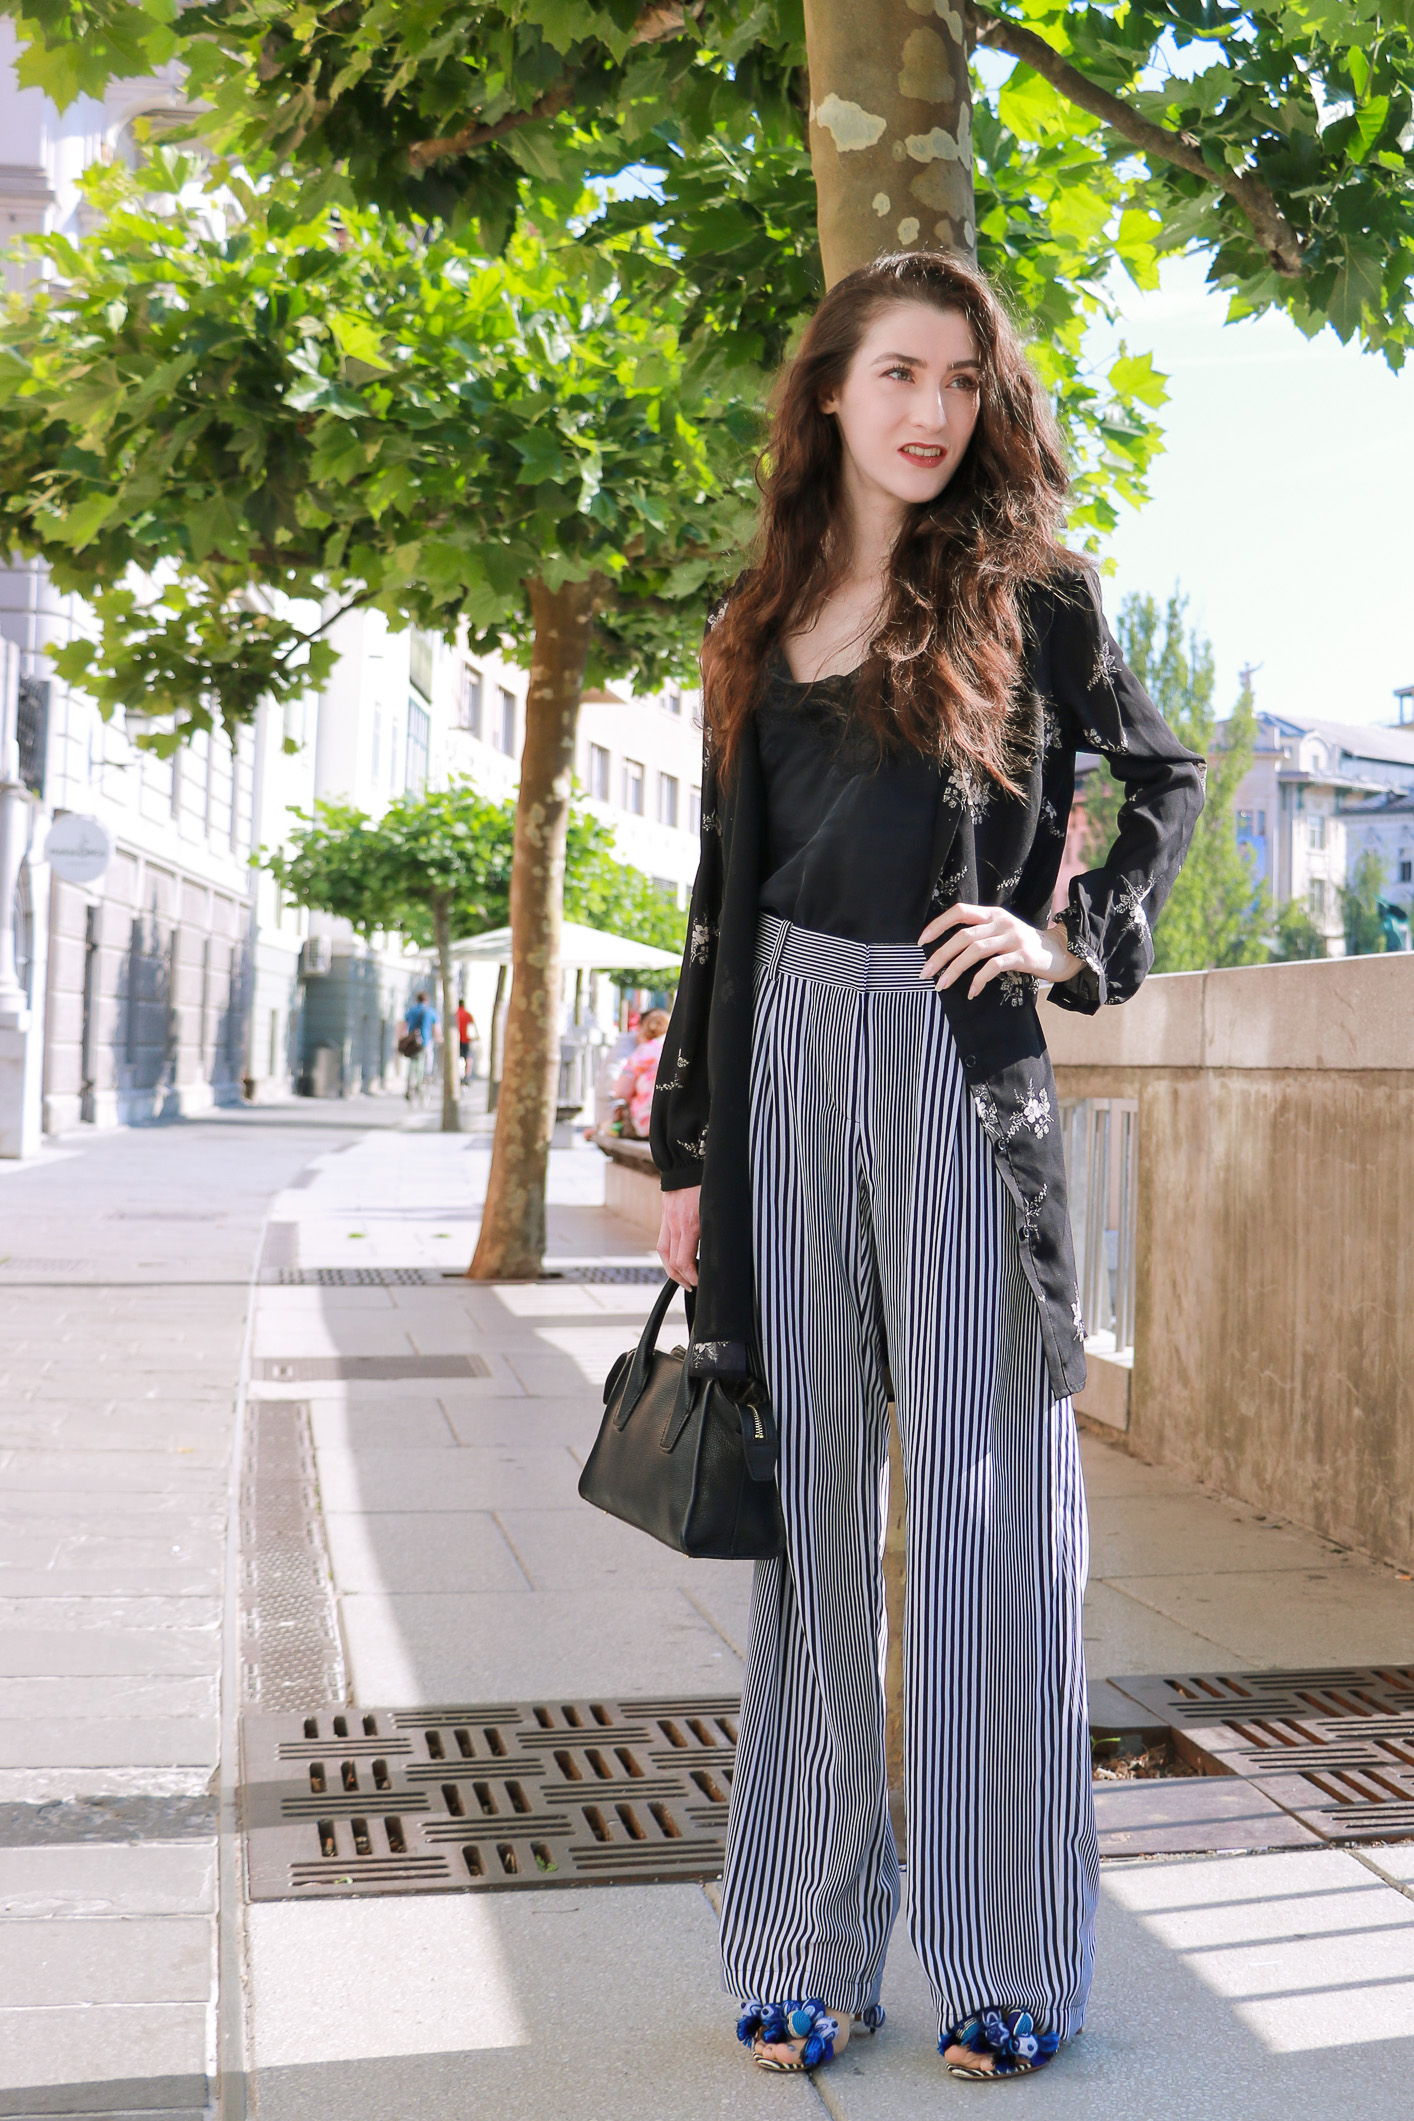 Fashion blogger Veronika Lipar of Brunette From Wall Street sharing how to style layers in the summer, wearing dark floral shirtdress and wide-leg pants